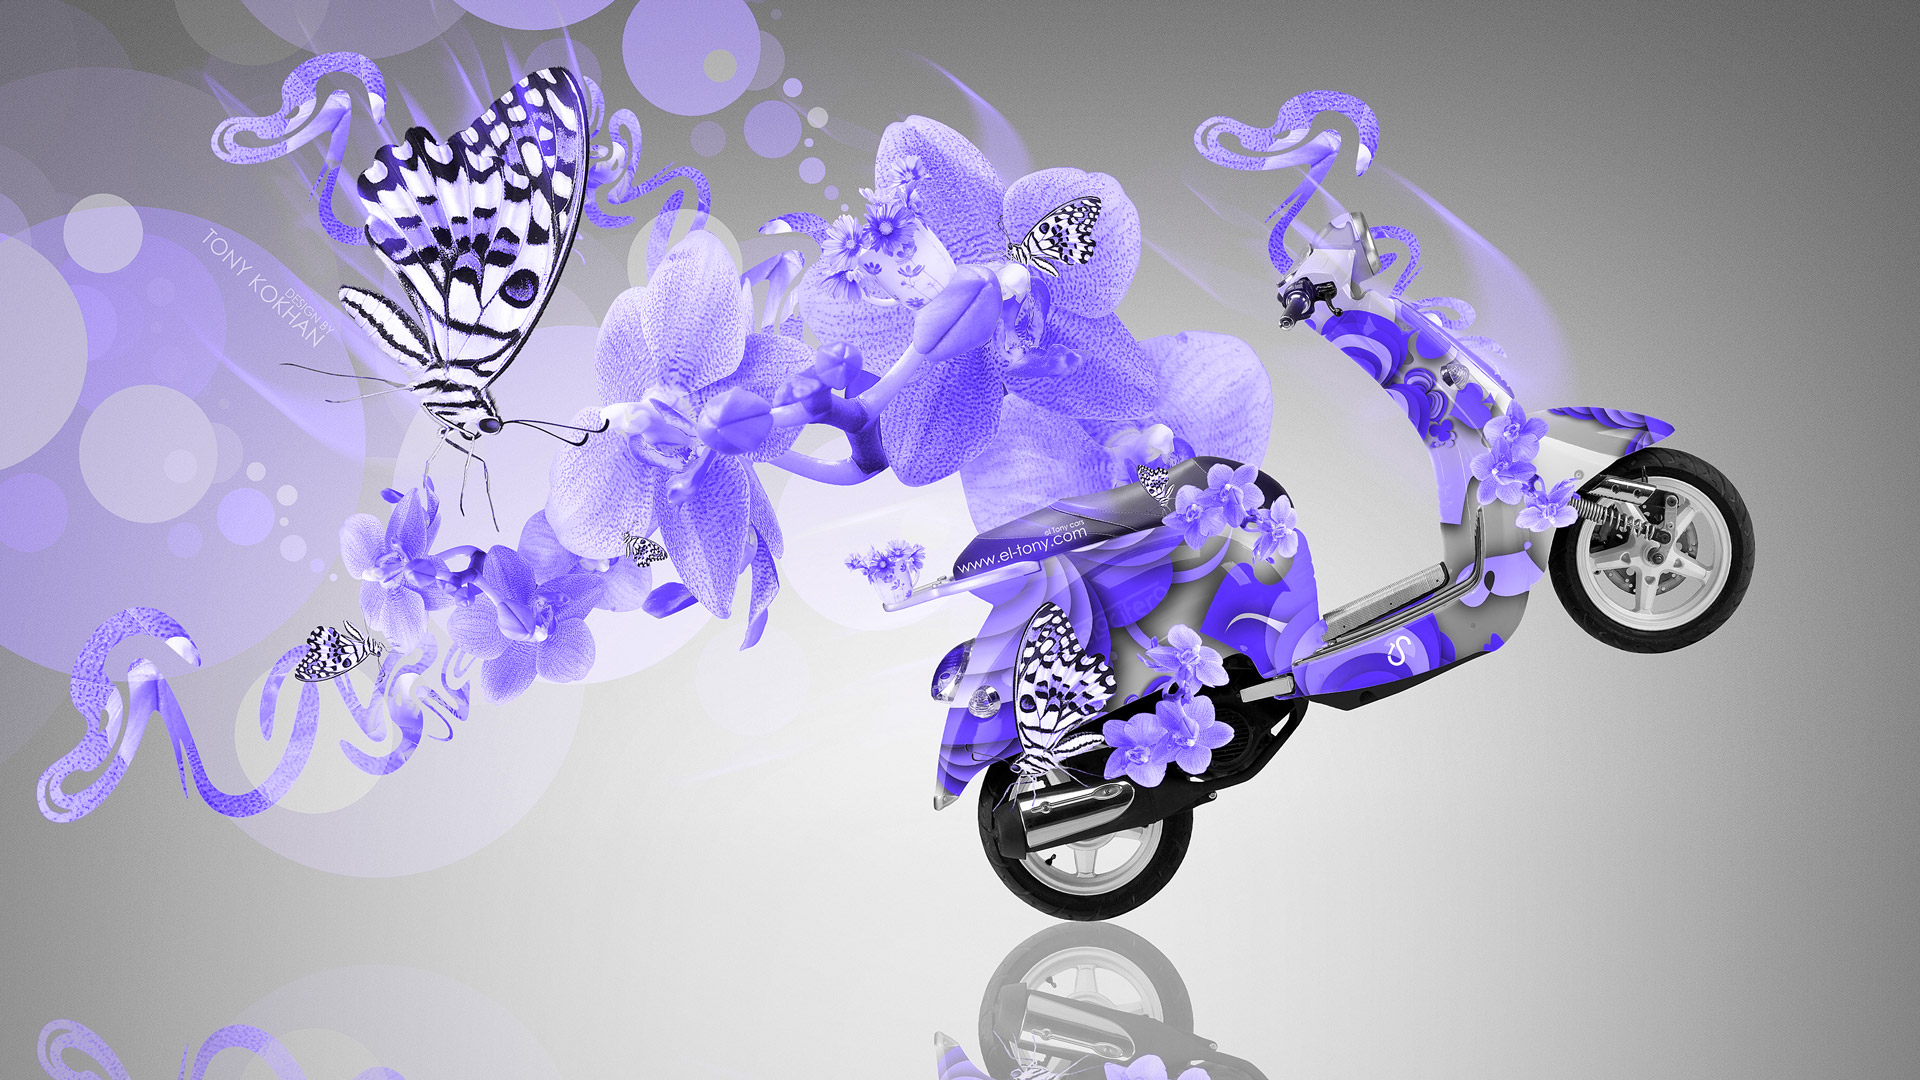 moto butterfly flowers bike 2014 blue neon hd wallpapers Car Tuning 1920x1080